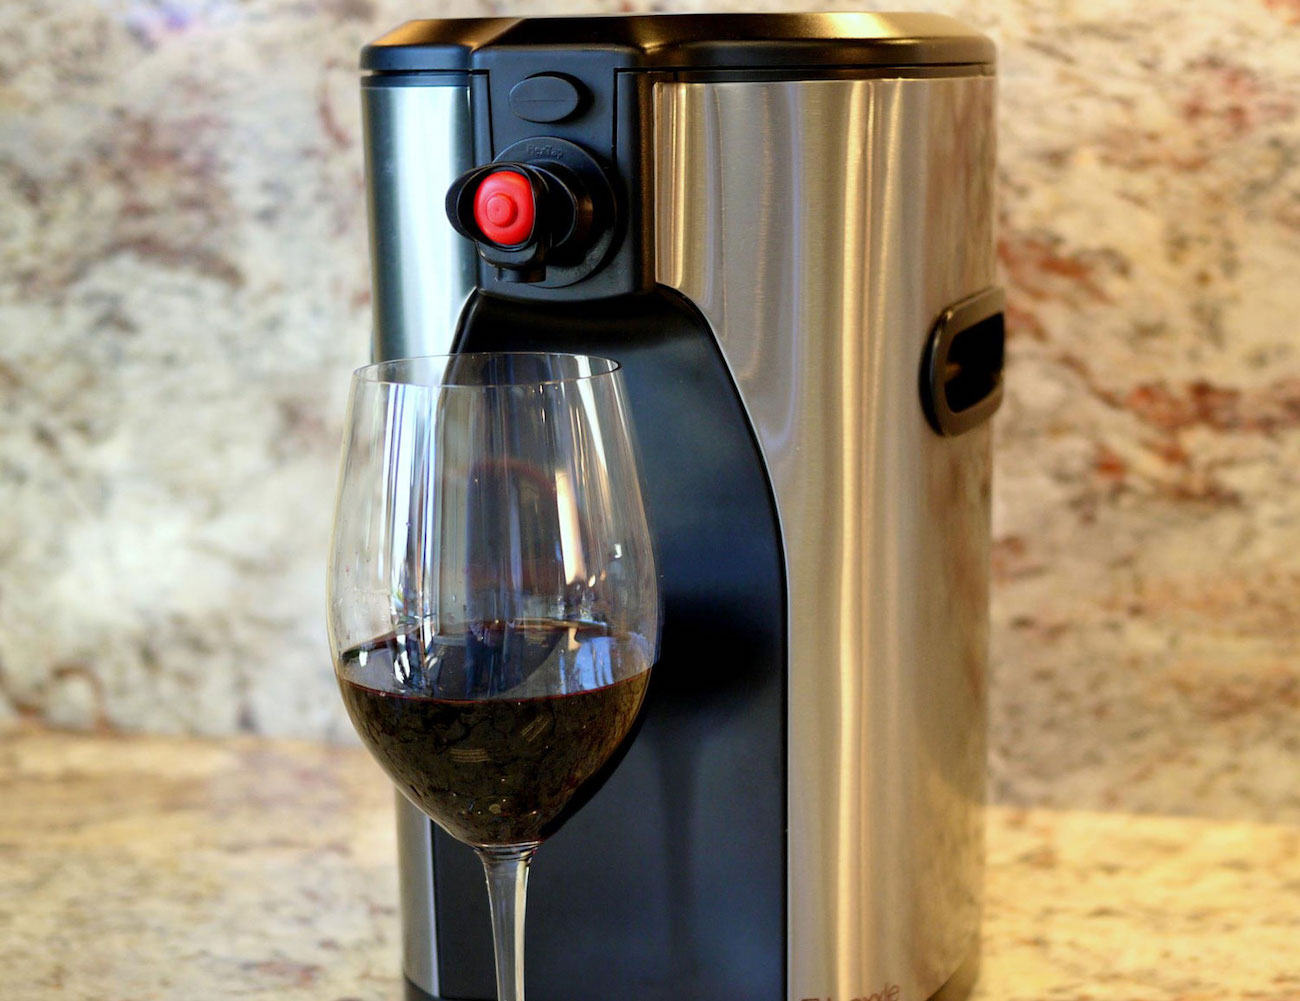 Boxxle Box Wine Dispenser pours your wine with style